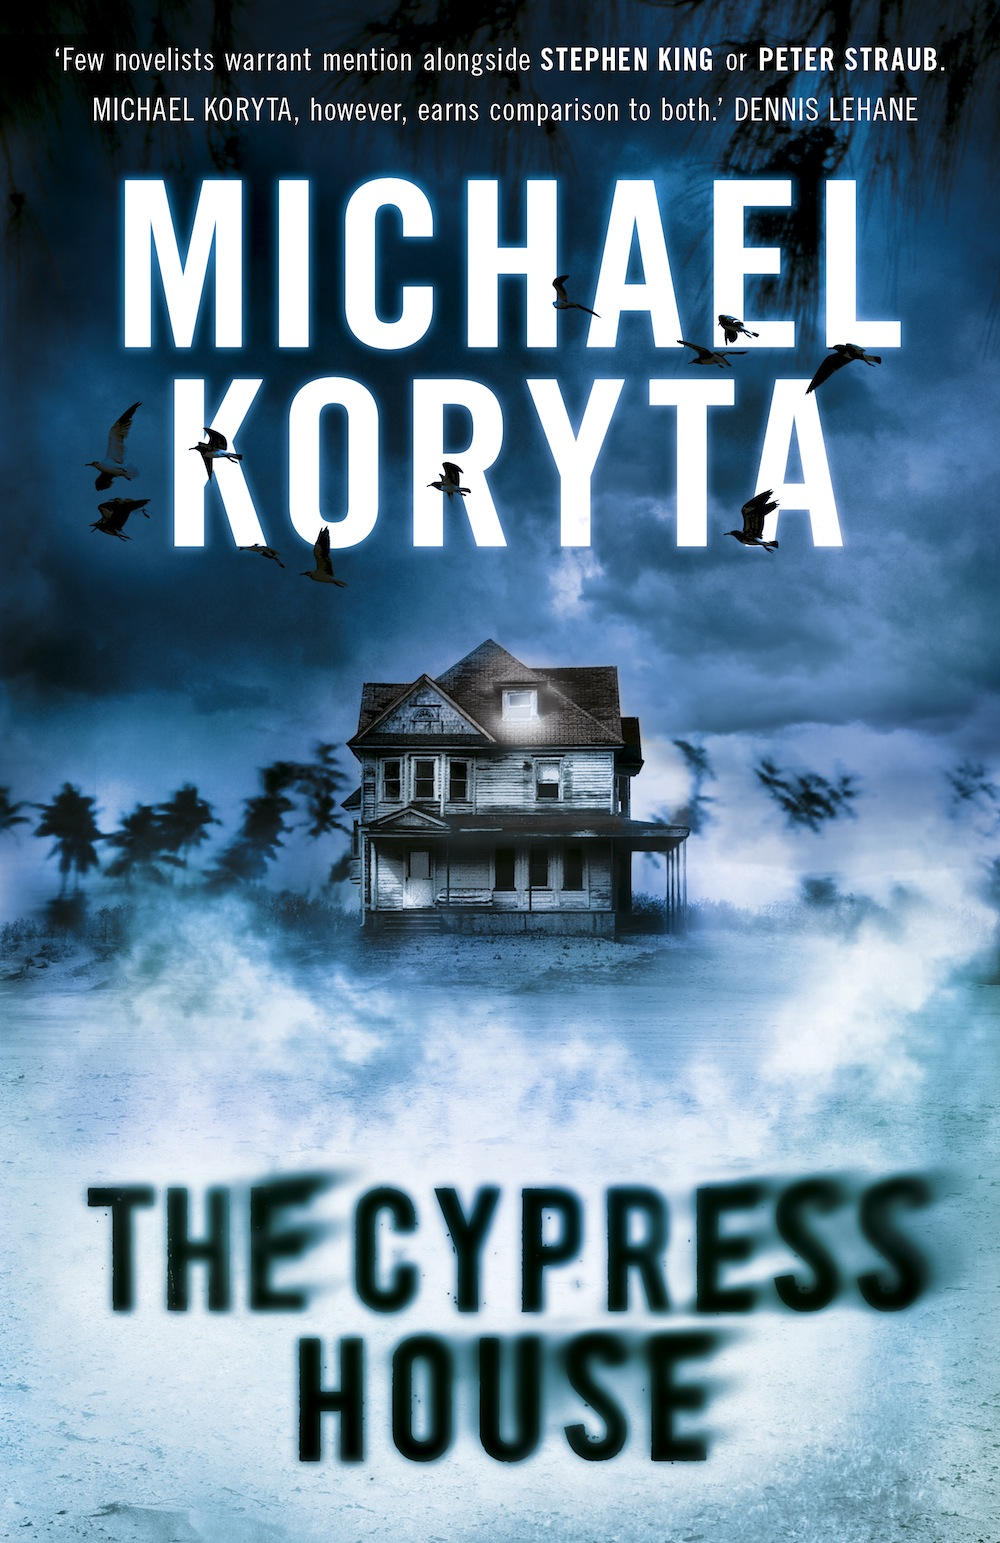 Michael koryta the cypress house crimepieces for Cypress house